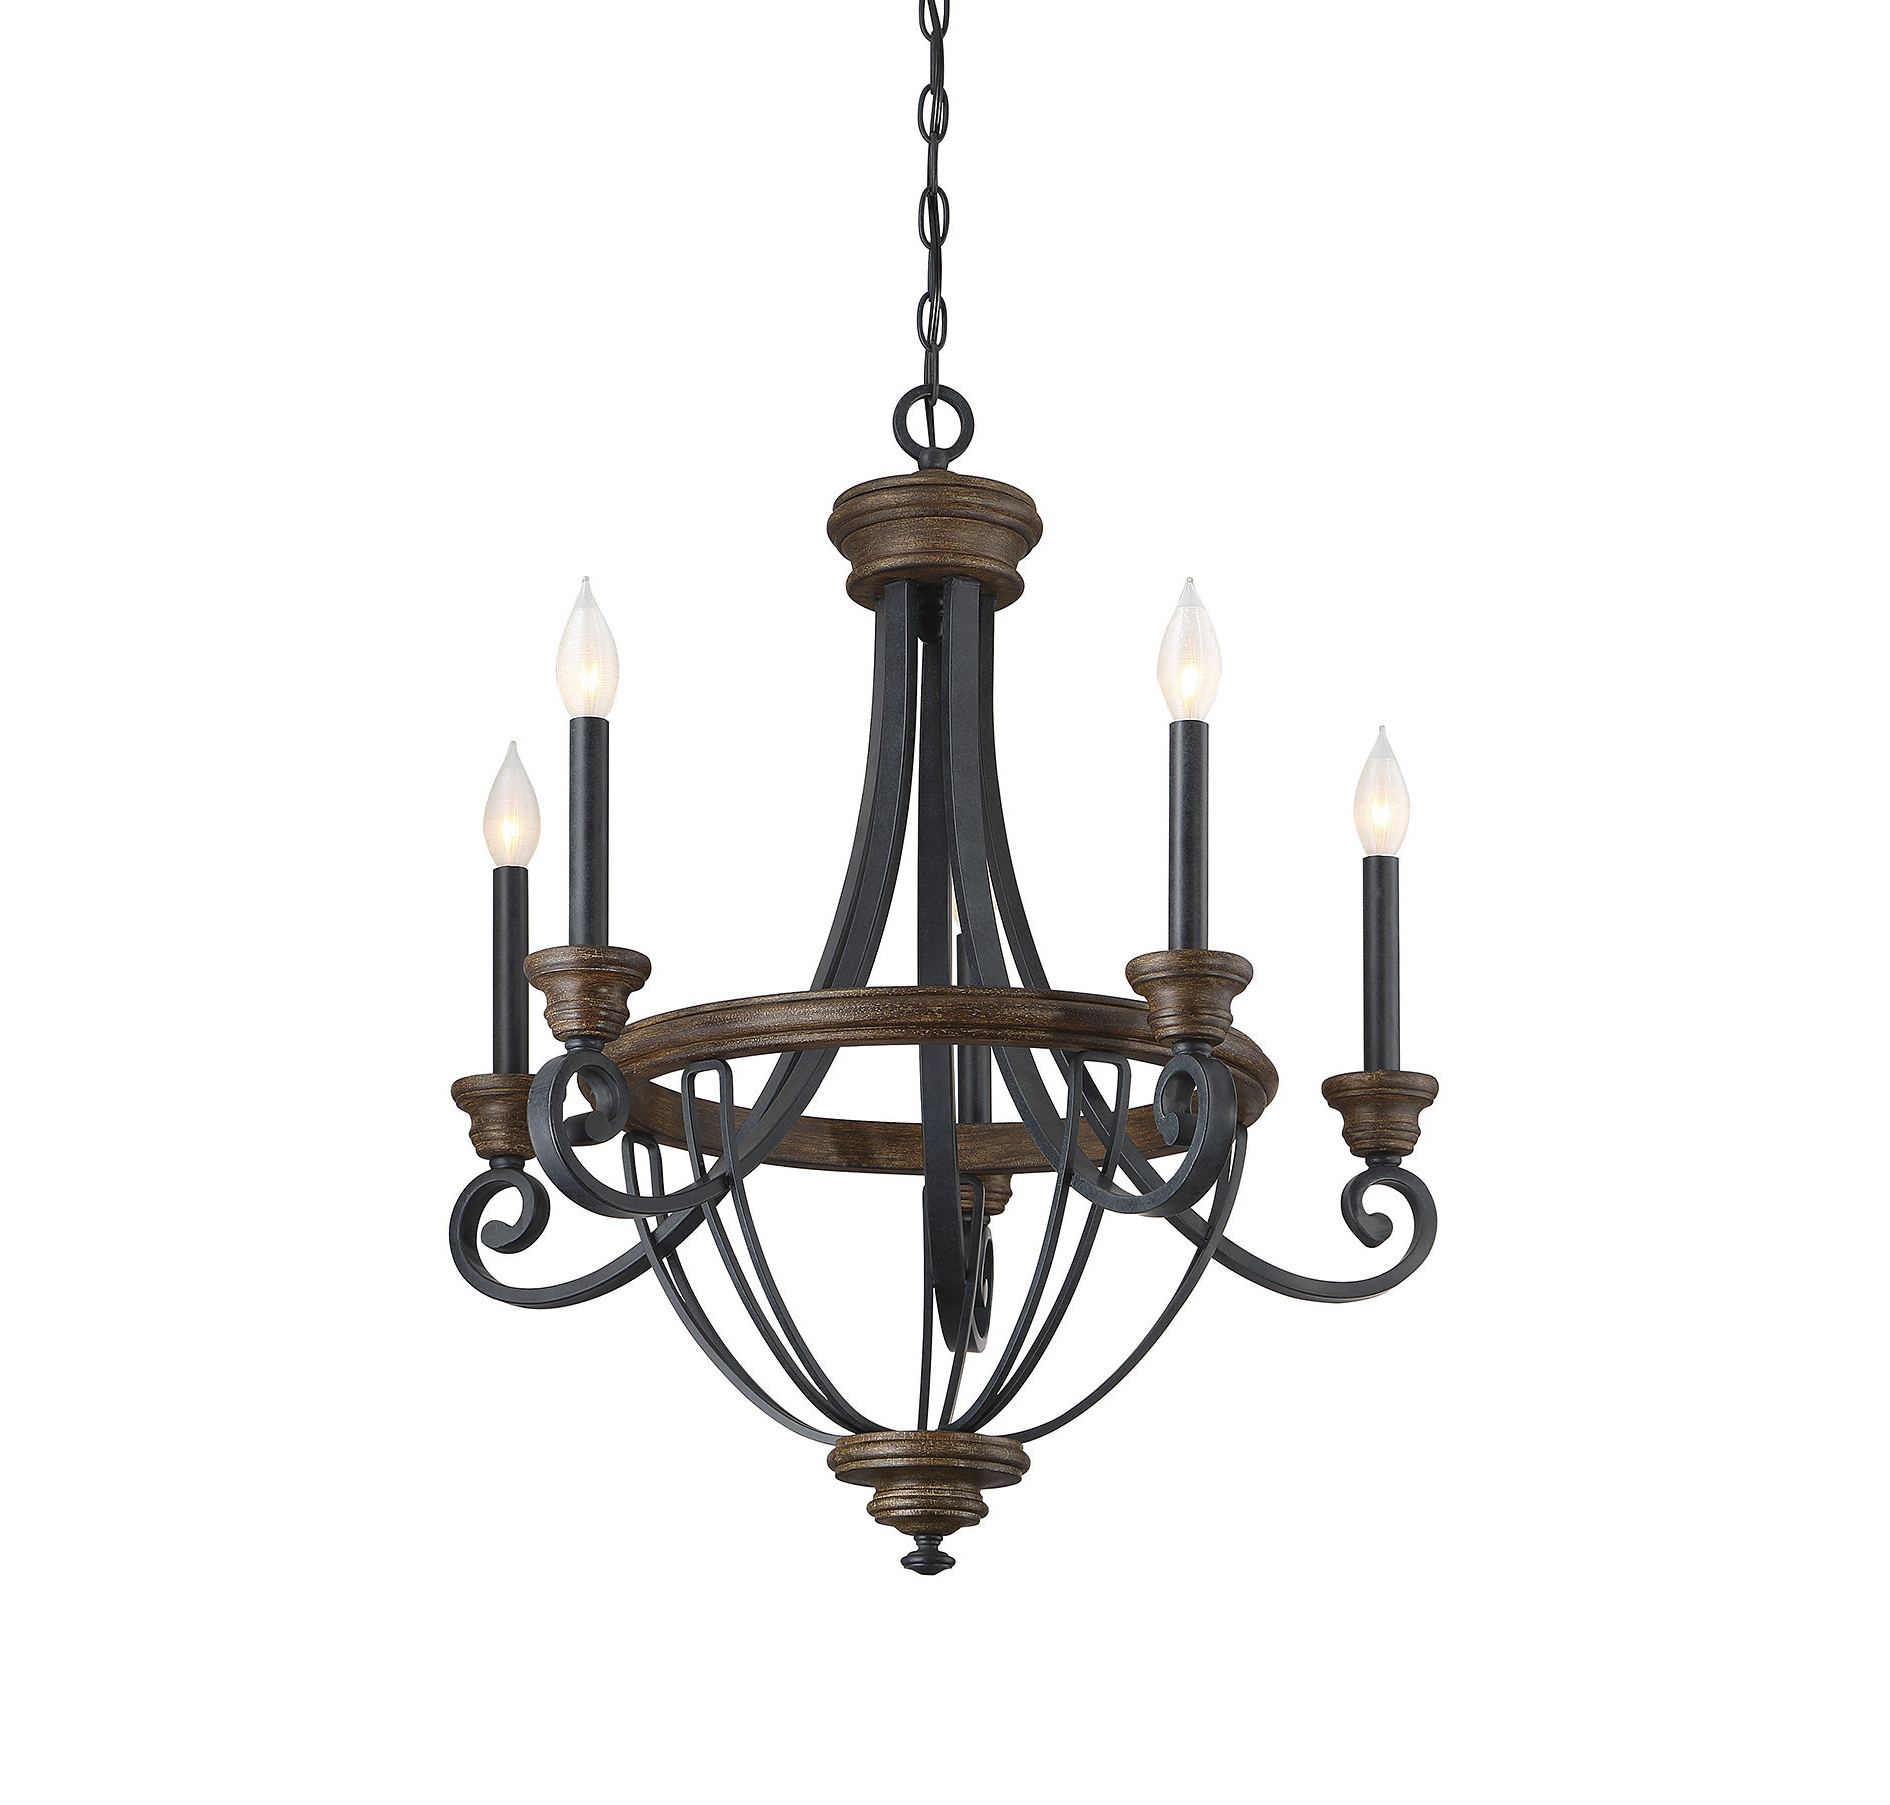 Nanteuil 5 Light Empire Chandelier Within 2020 Kenna 5 Light Empire Chandeliers (View 9 of 25)